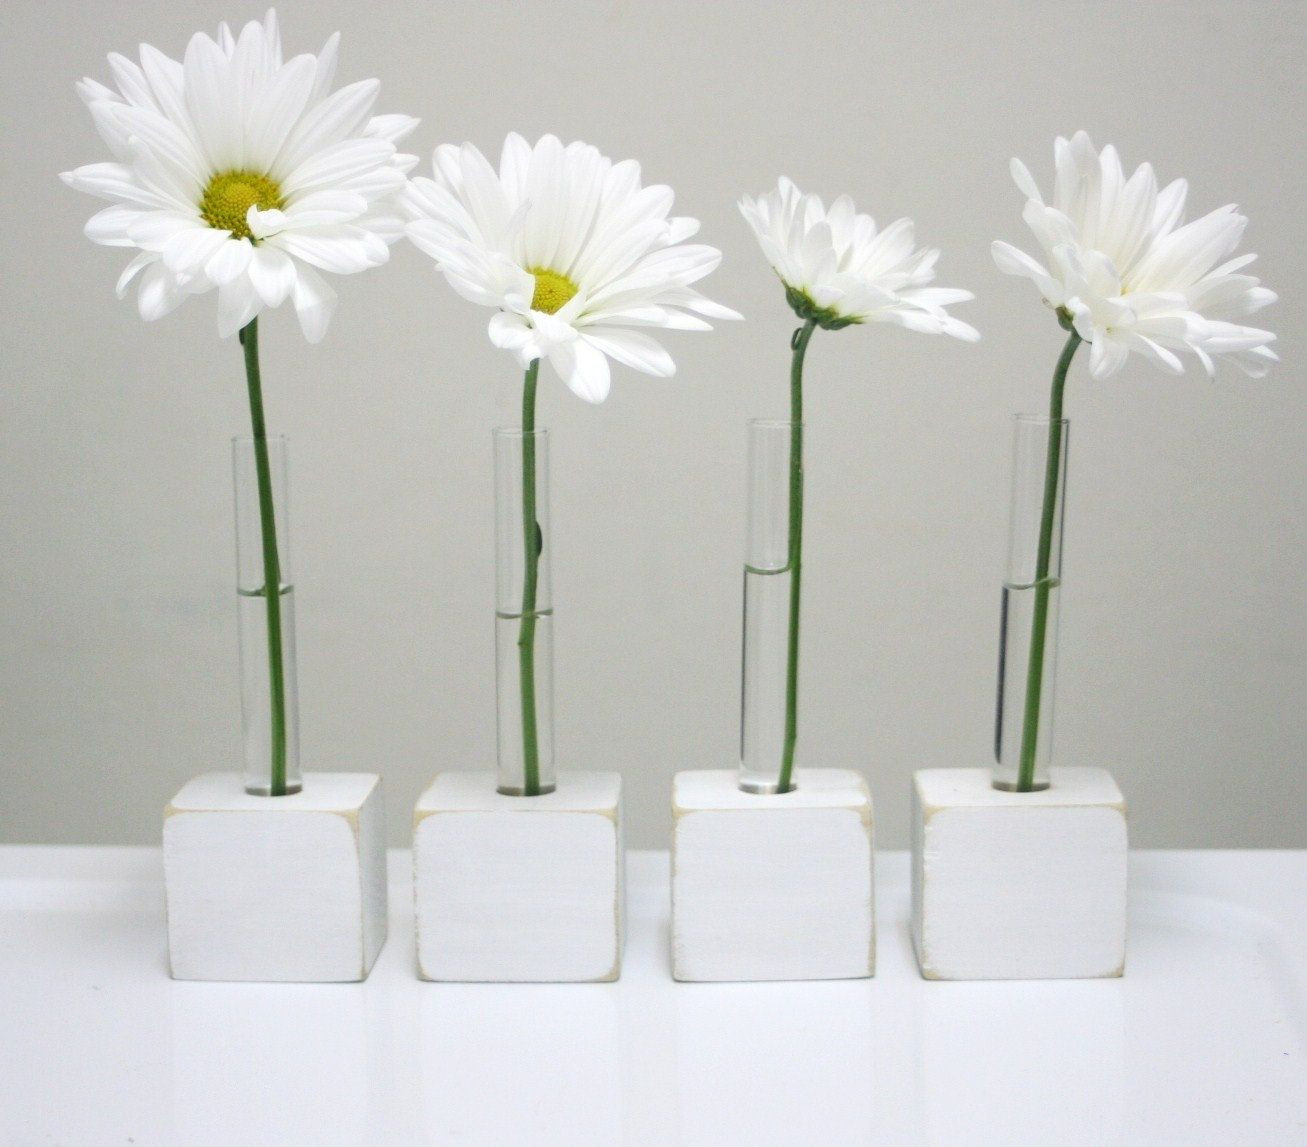 tube bud vase of gerbera daisies feel appropriately playful and mod in stem in gerbera daisies feel appropriately playful and mod in stem supporting test tube vases 14 for a set of 4